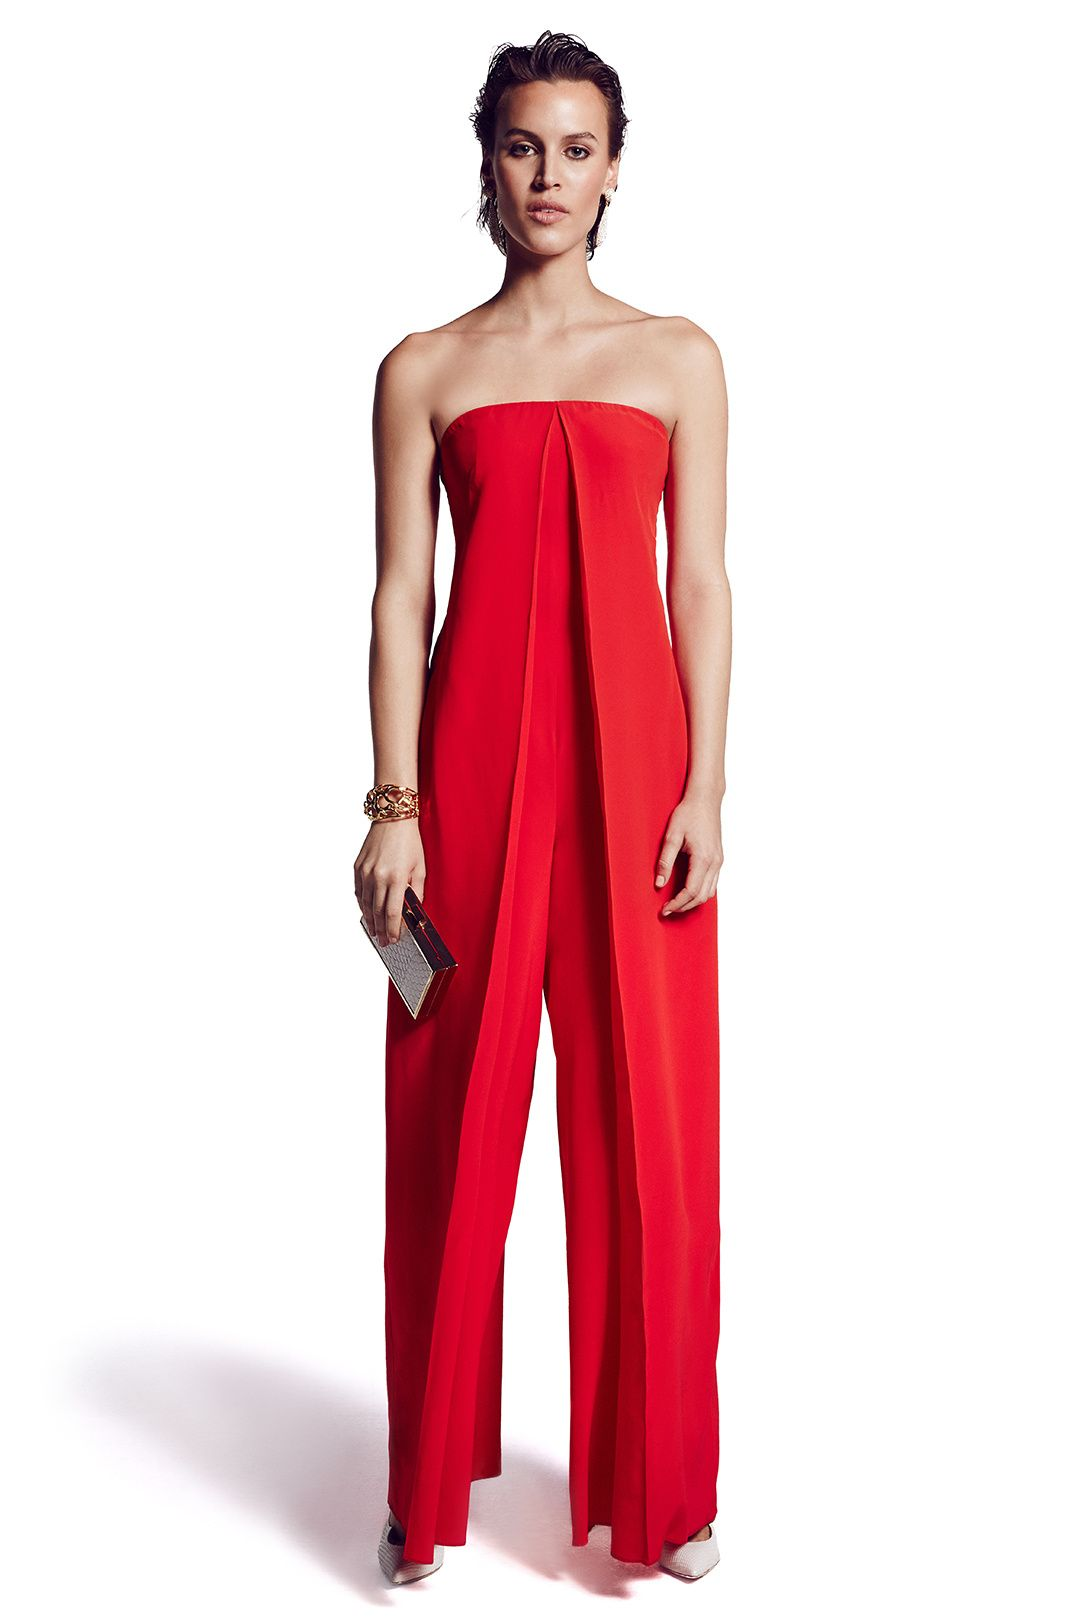 c1ebb0102 Origami Jumpsuit by Cedric Charlier for $175 | Rent The Runway ...